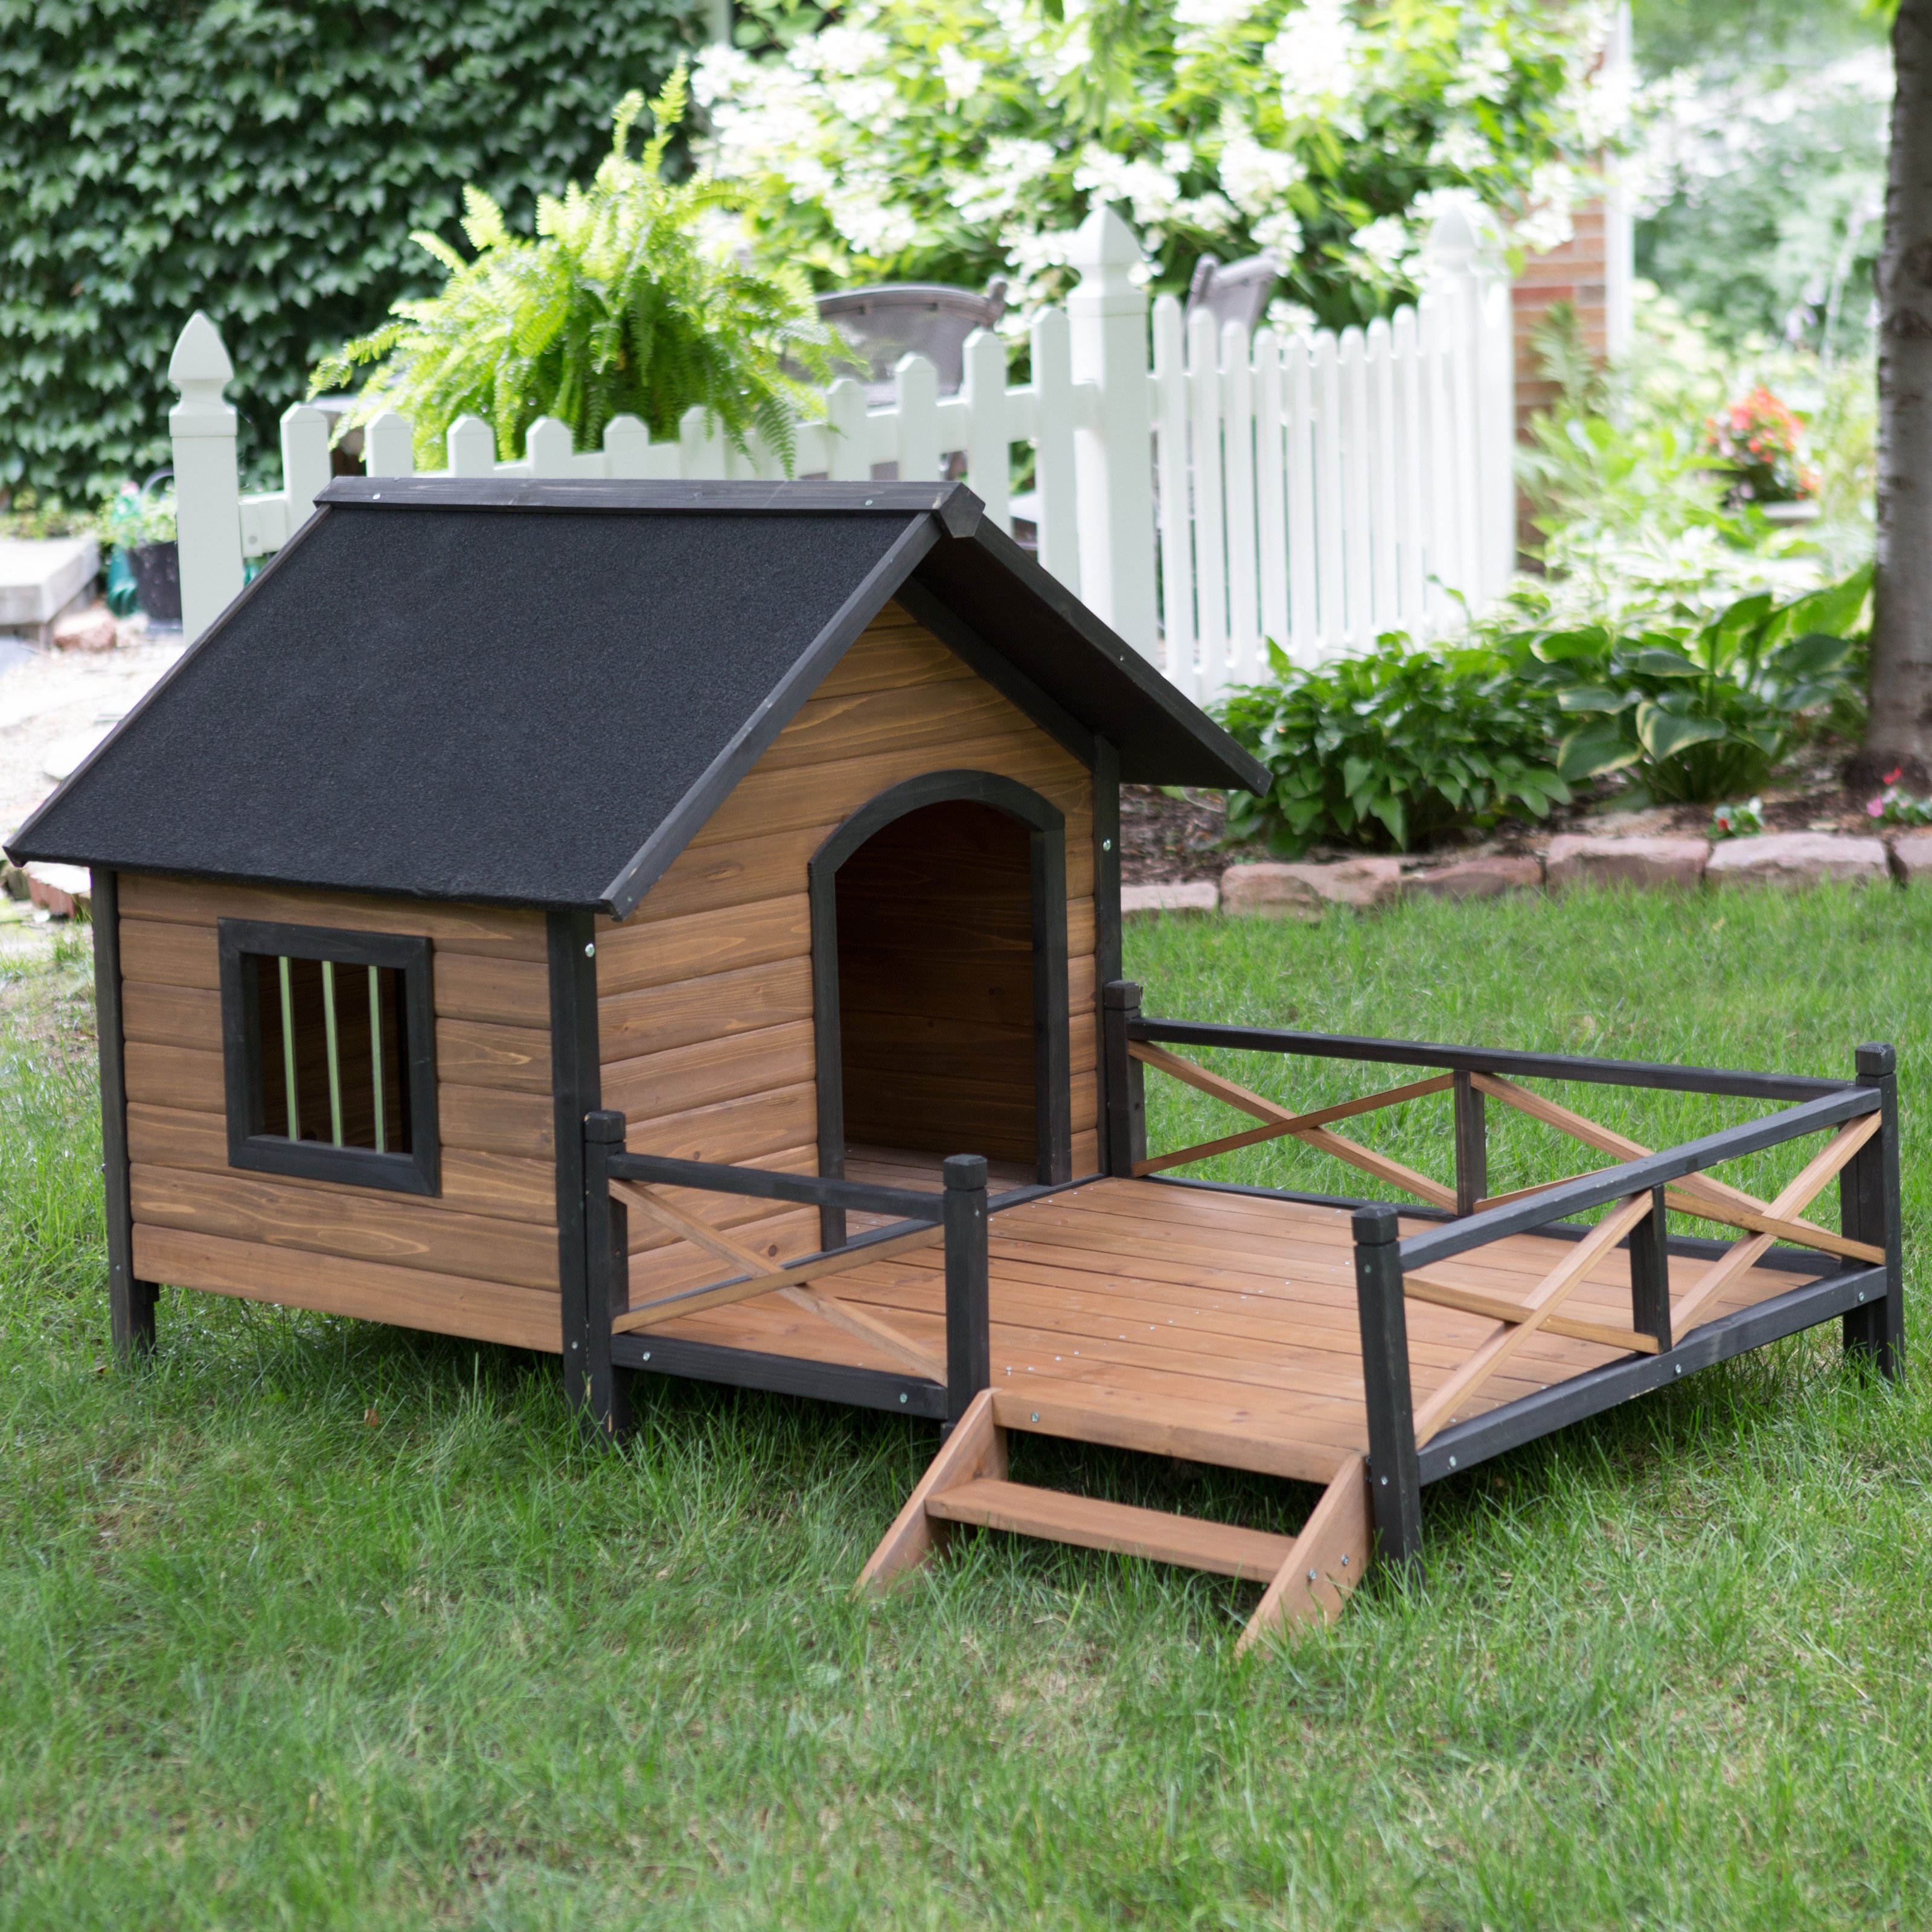 Dog house of green valley - Boomer George Lodge Dog House With Porch Large